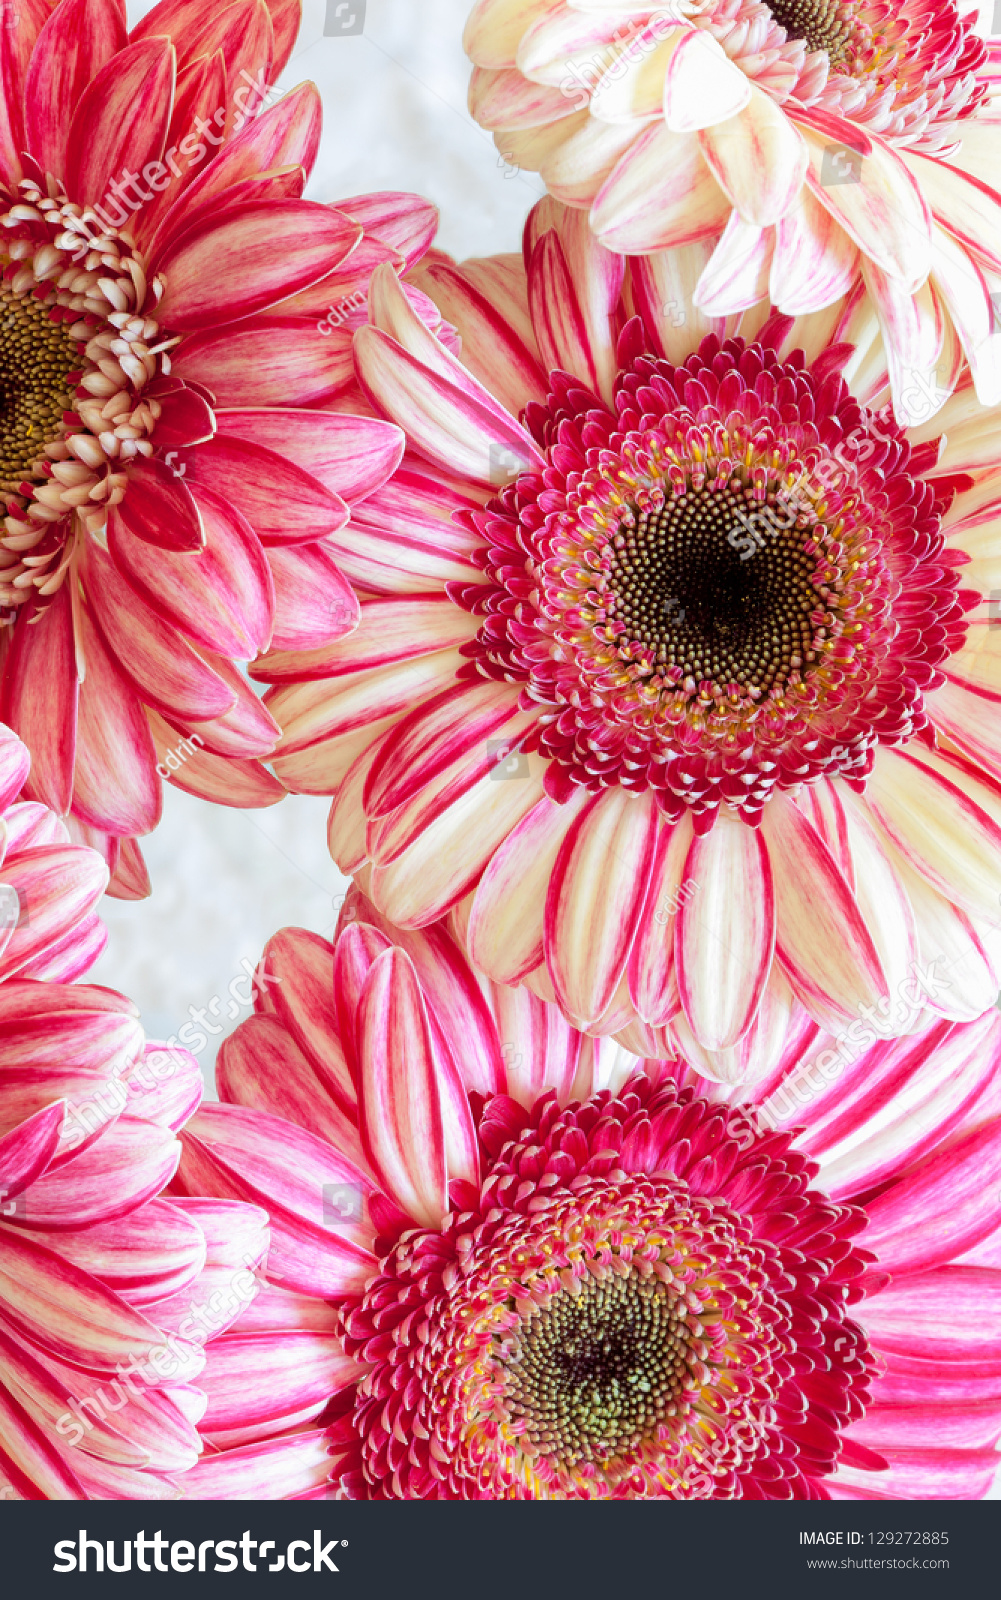 Pink Red Cream Gerbera Daisy Flowers Stock Photo (Download Now ...